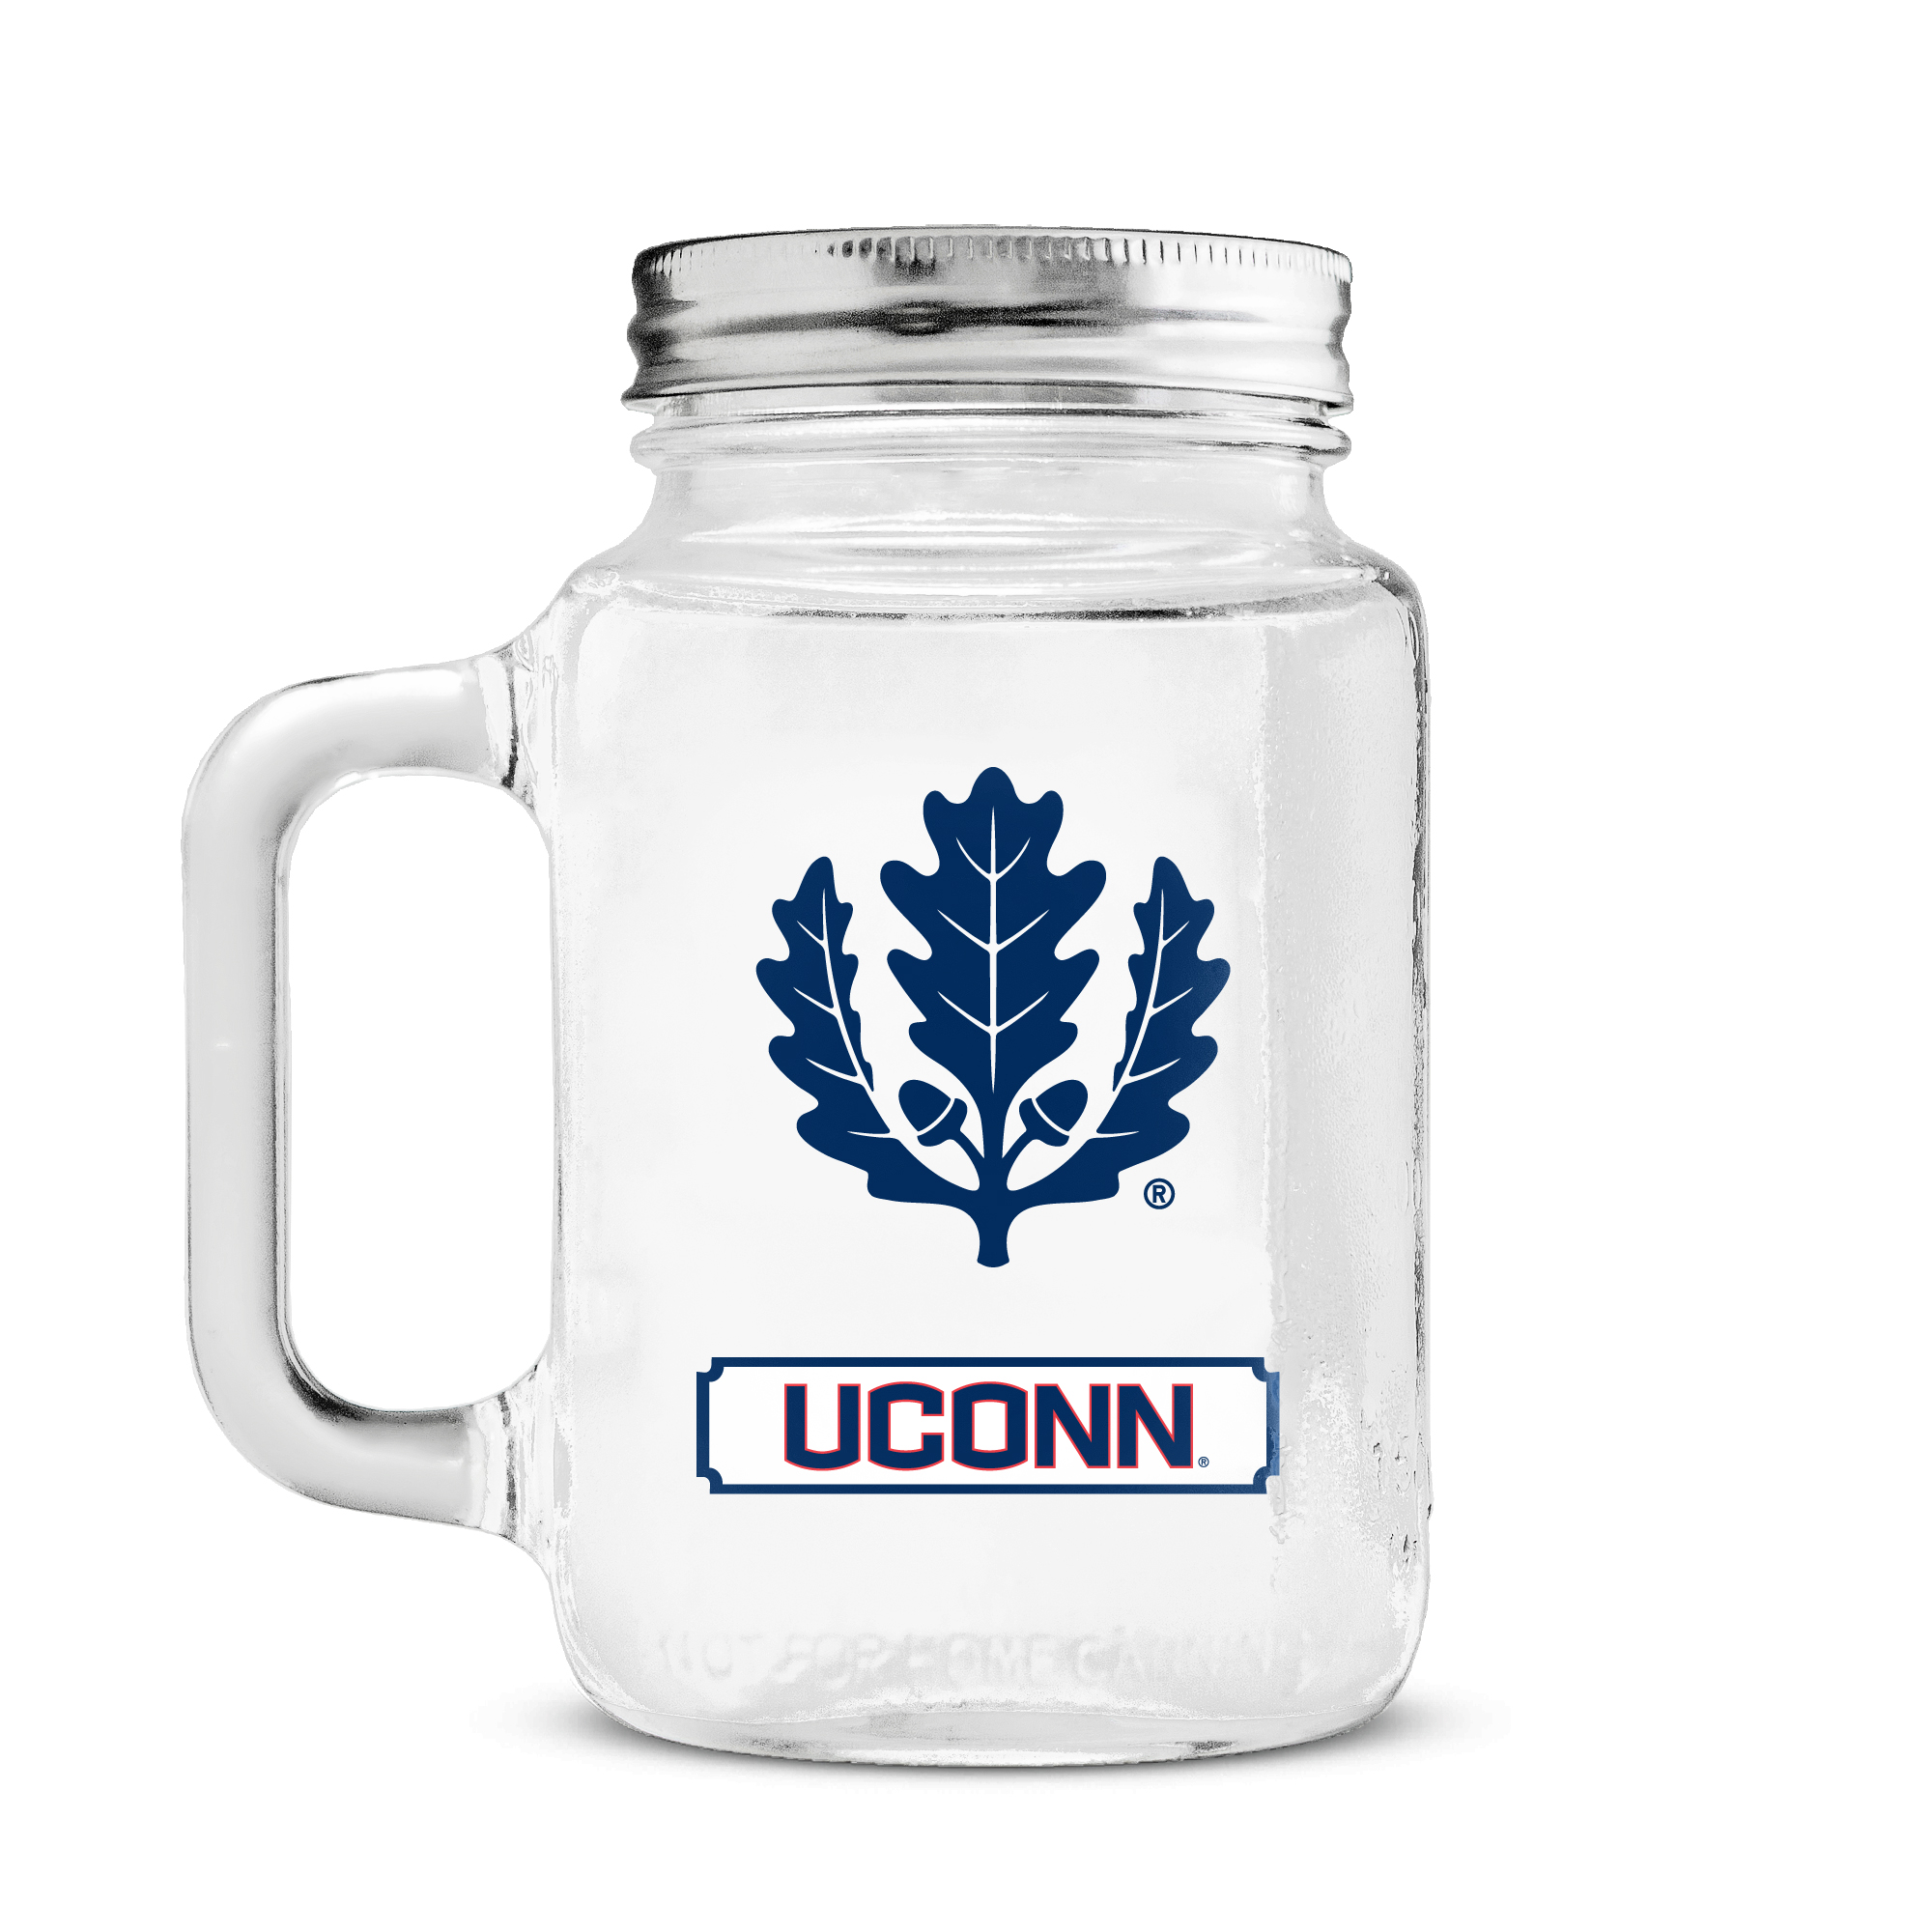 20 oz Mason Jar - University of Connecticut University of Connecticut DHCCONMJ